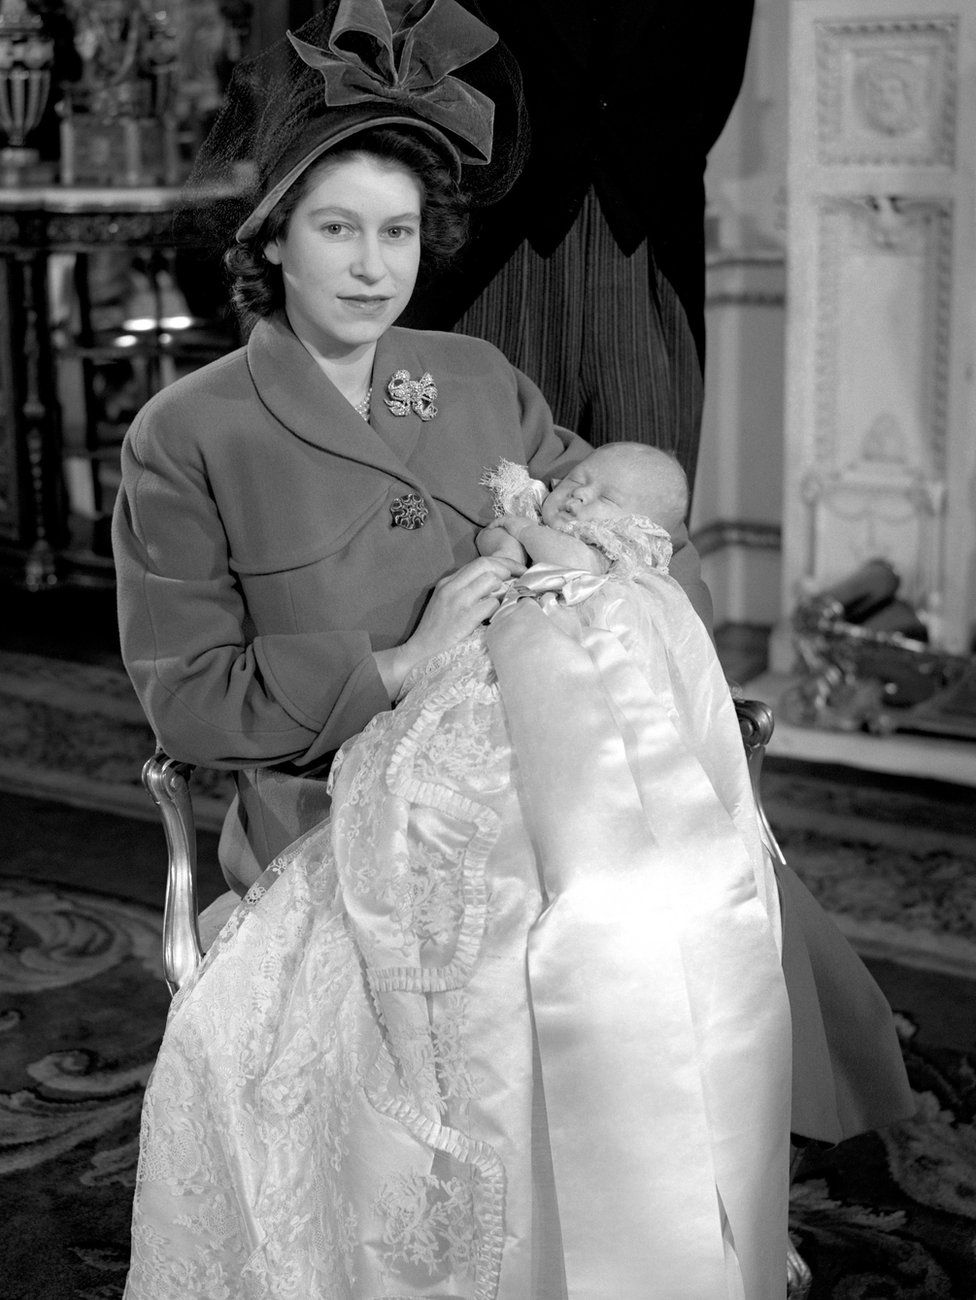 Princess Elizabeth holding her infant son, Prince Charles, after his christening ceremony at Buckingham Palace